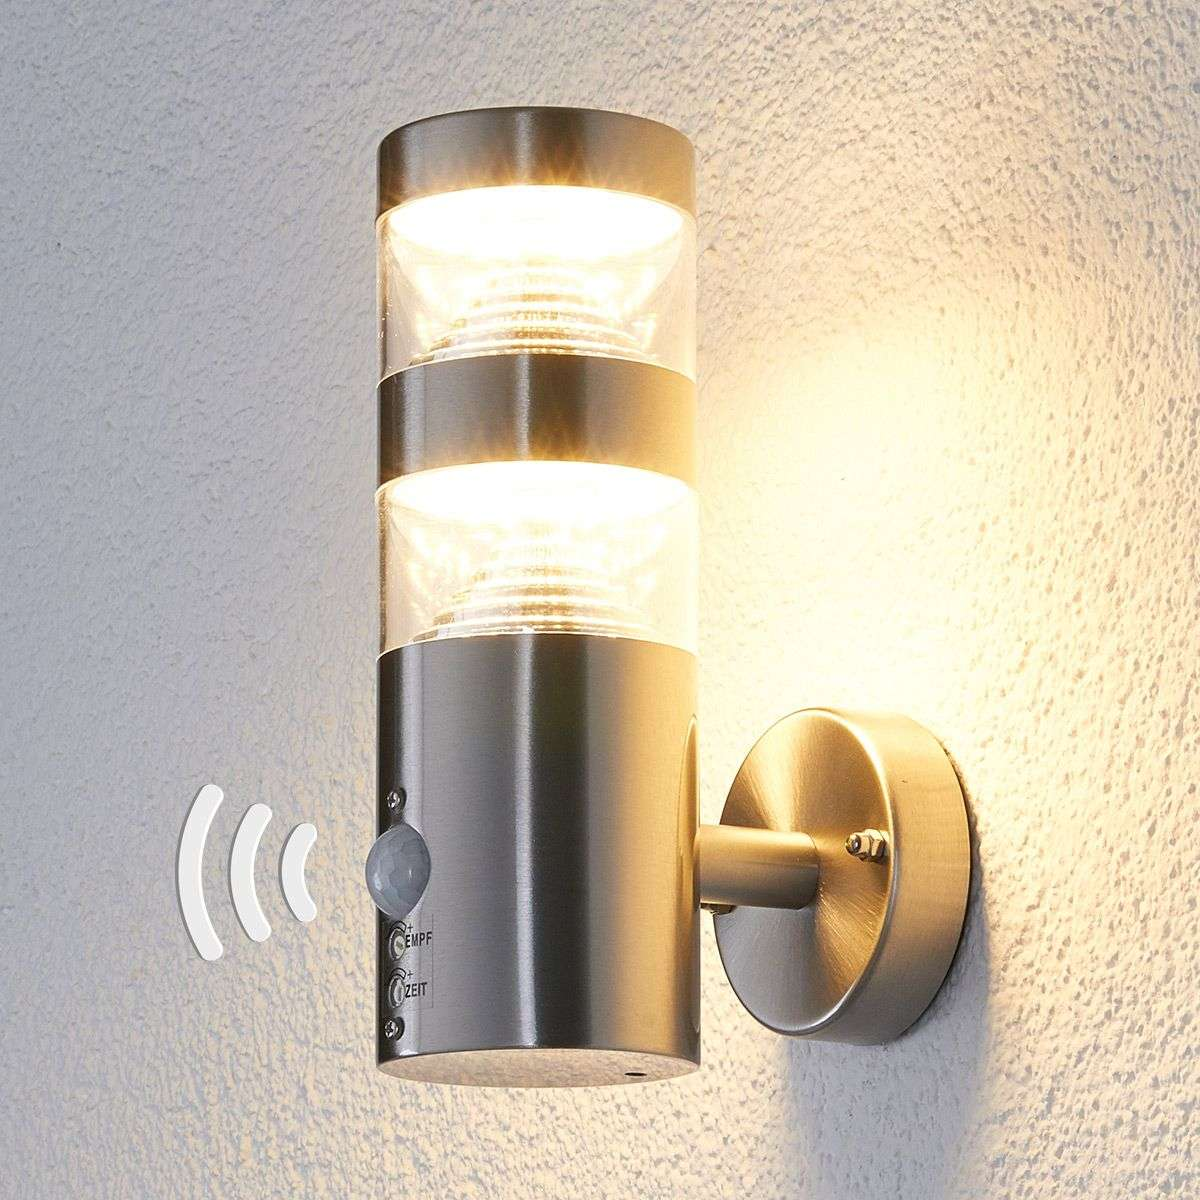 Led outdoor wall light lanea with motion sensor lights led outdoor wall light lanea with motion sensor aloadofball